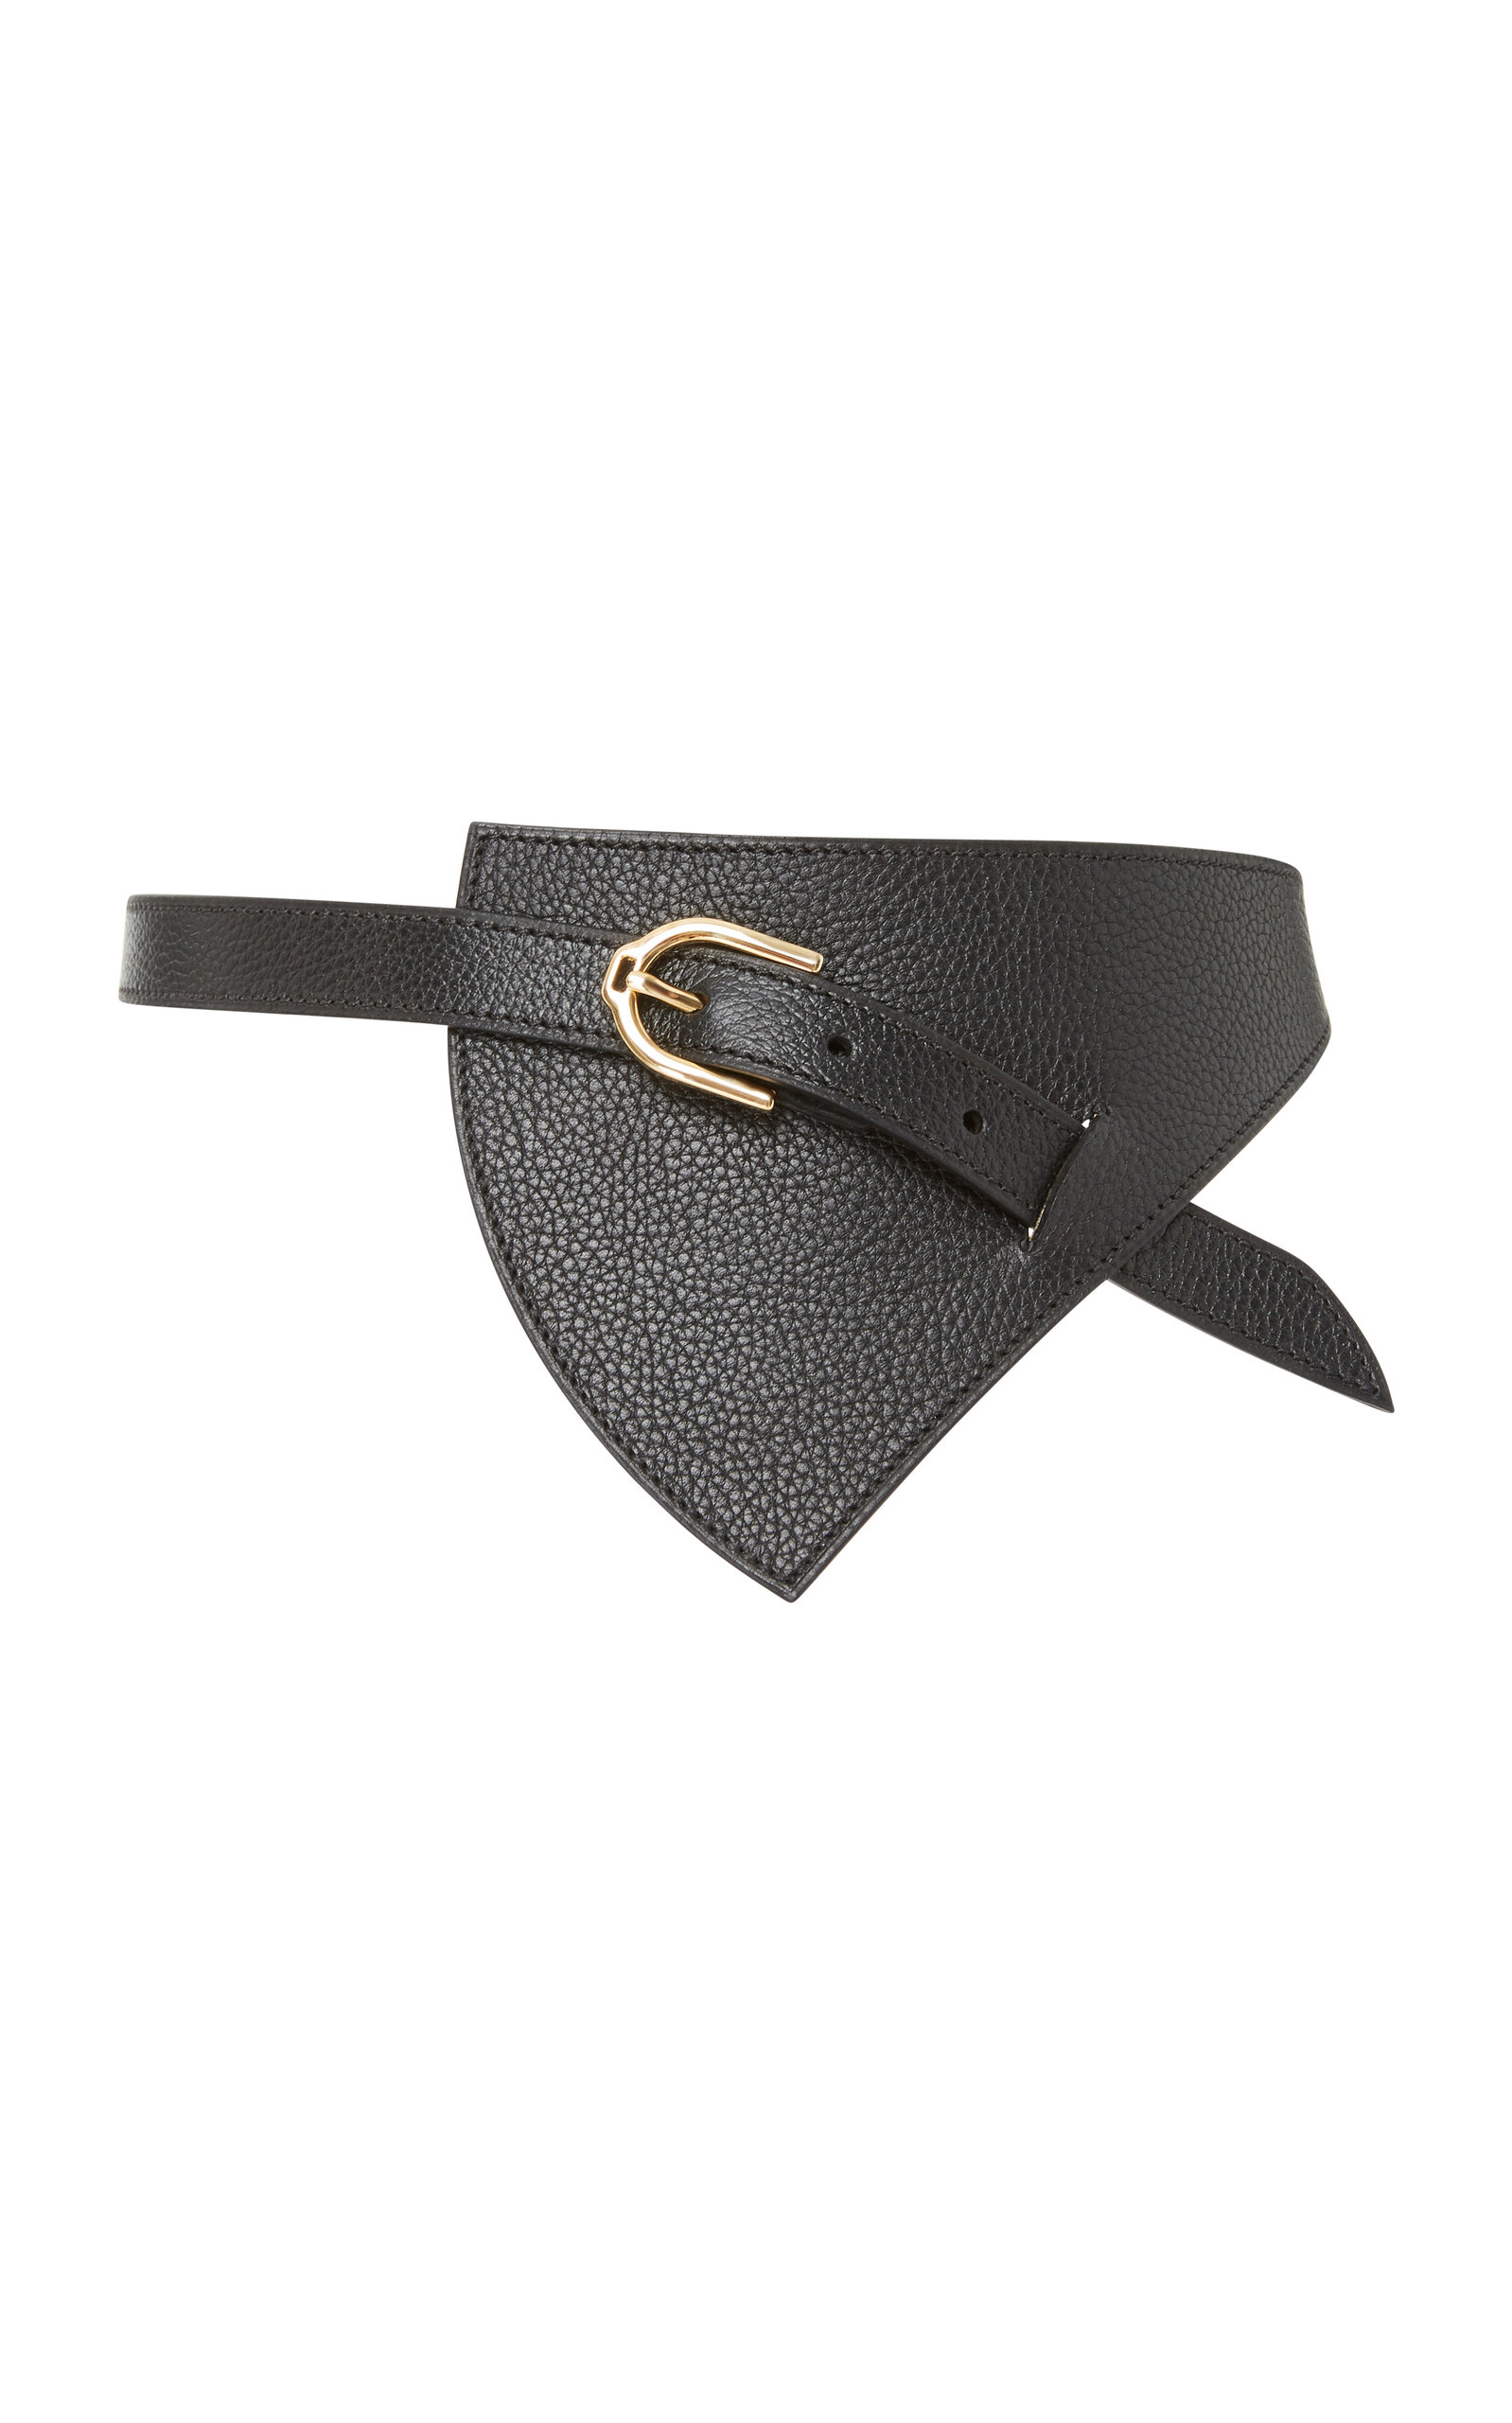 MAISON VAINCOURT M'O EXCLUSIVE REVERSIBLE TRIANGLE LEATHER WAIST BELT